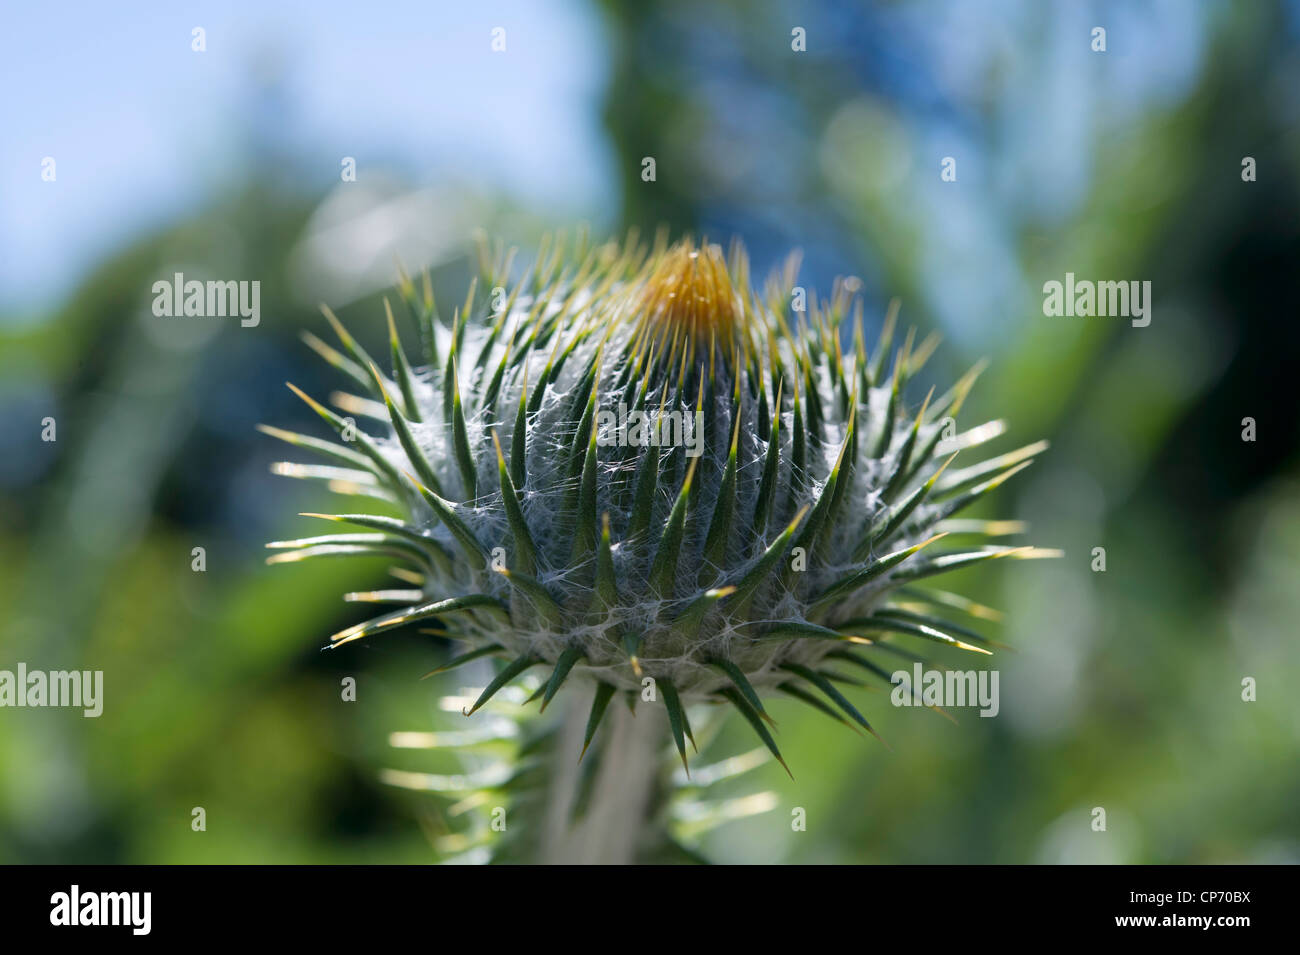 Thistle flower - Stock Image